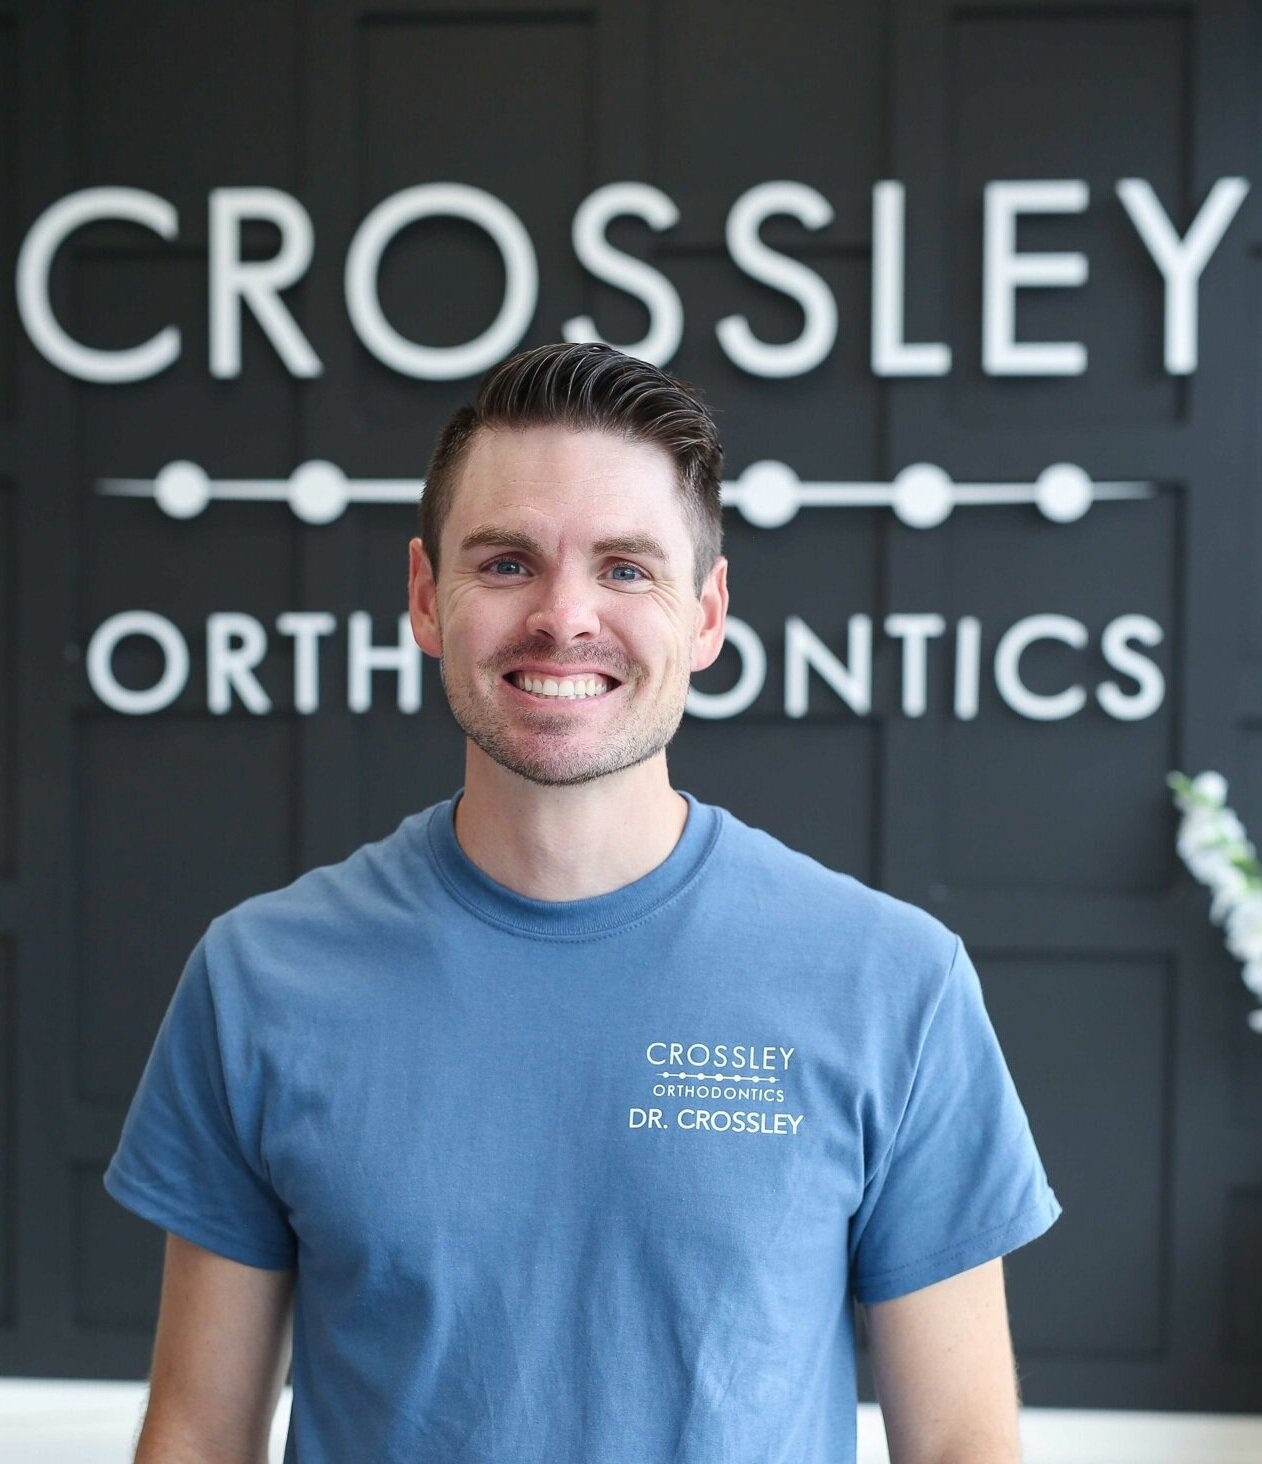 Credentials: - Brigham Young University - Bachelor of Science in Exercise ScienceTexas A&M Baylor College of Dentistry - Doctor of Dental SurgeryTexas A&M Baylor College of Dentistry Department of Orthodontics - Advanced Certification and Masters Degree in Orthodontics, Dentofacial Orthopedics, and Oral BiologyActive Member of American Association of Orthodontists, American Dental Association